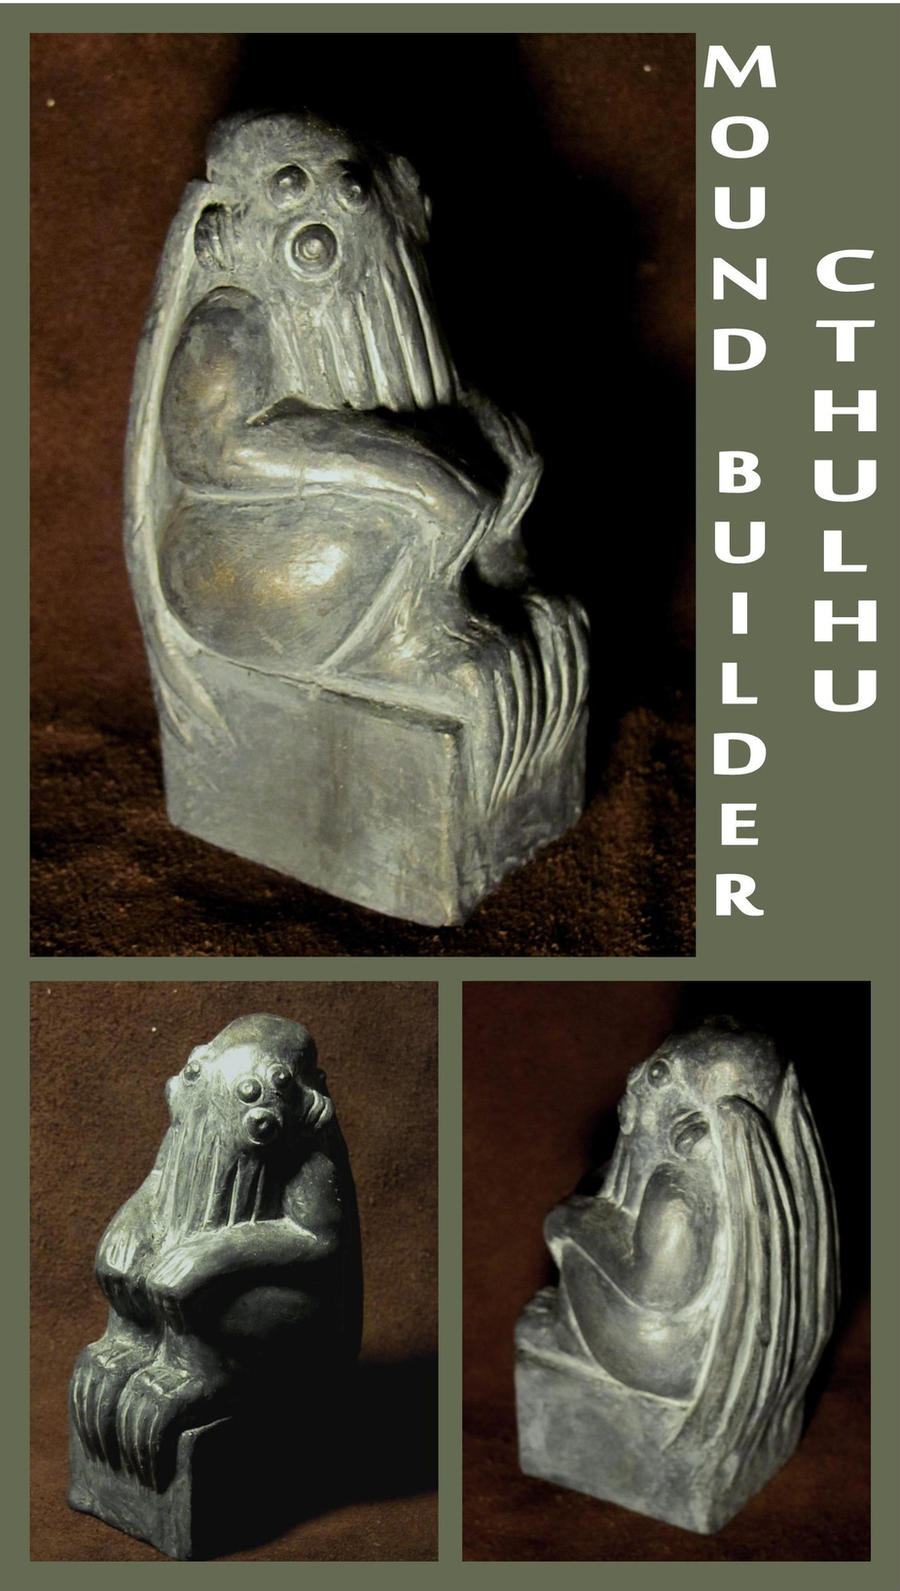 H.P. Lovecraft - Mound Builder Cthulhu by zombiequadrille